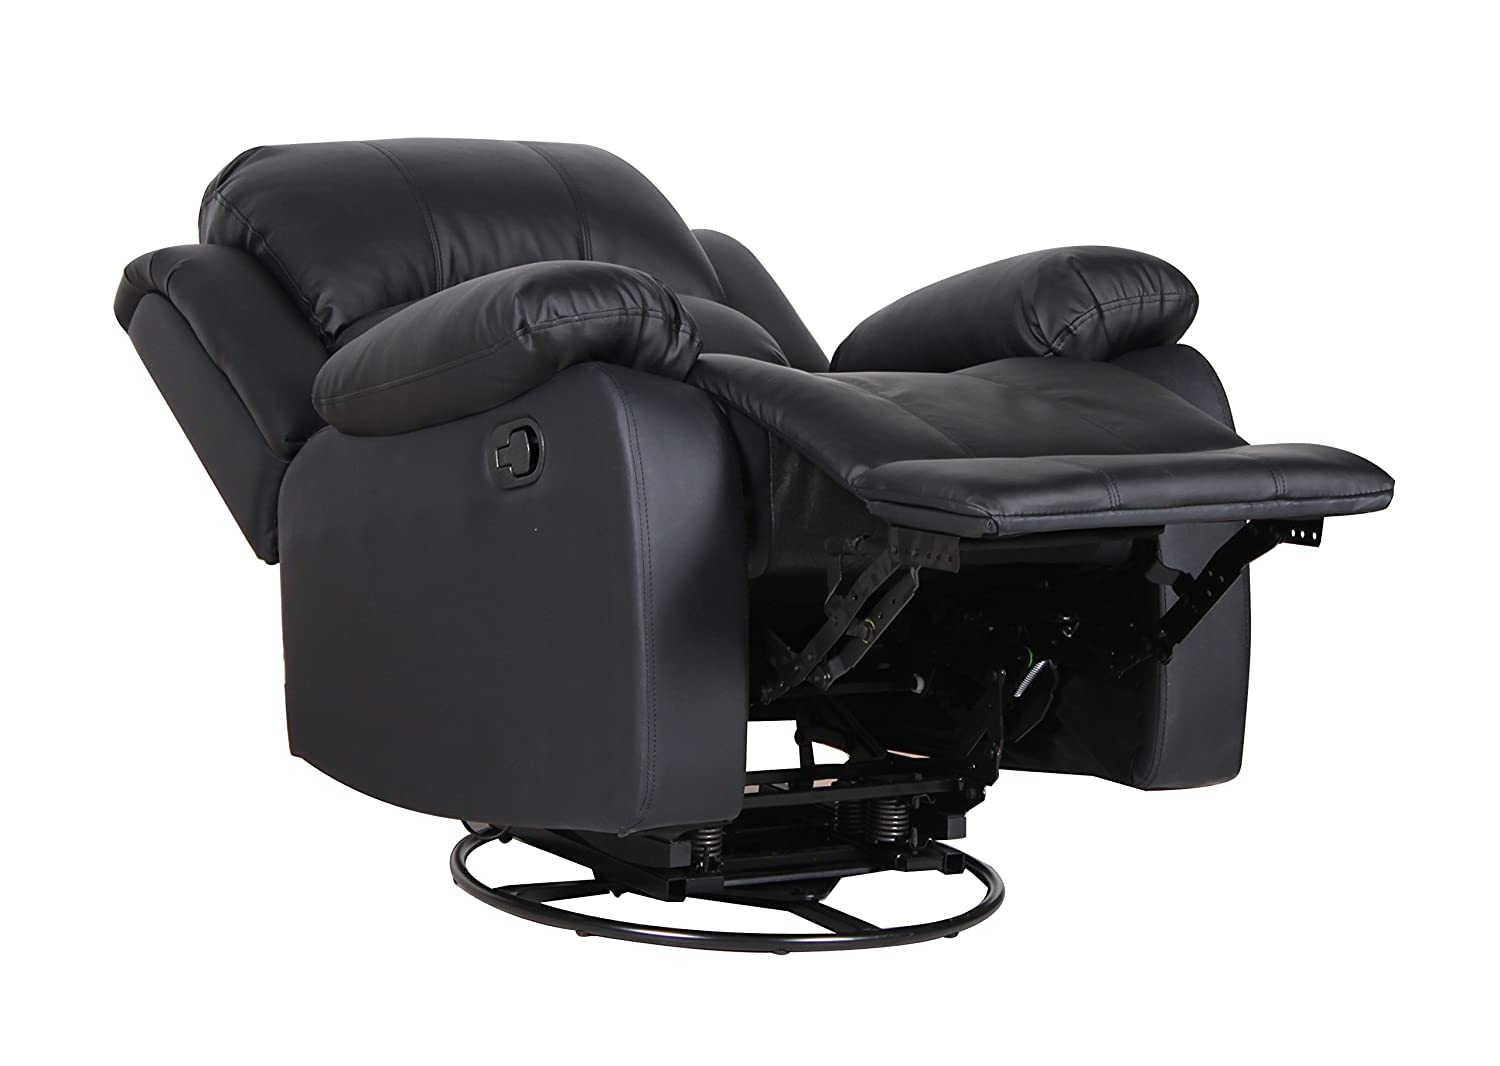 mobile recliners la tranquility z recliner medical adult boy